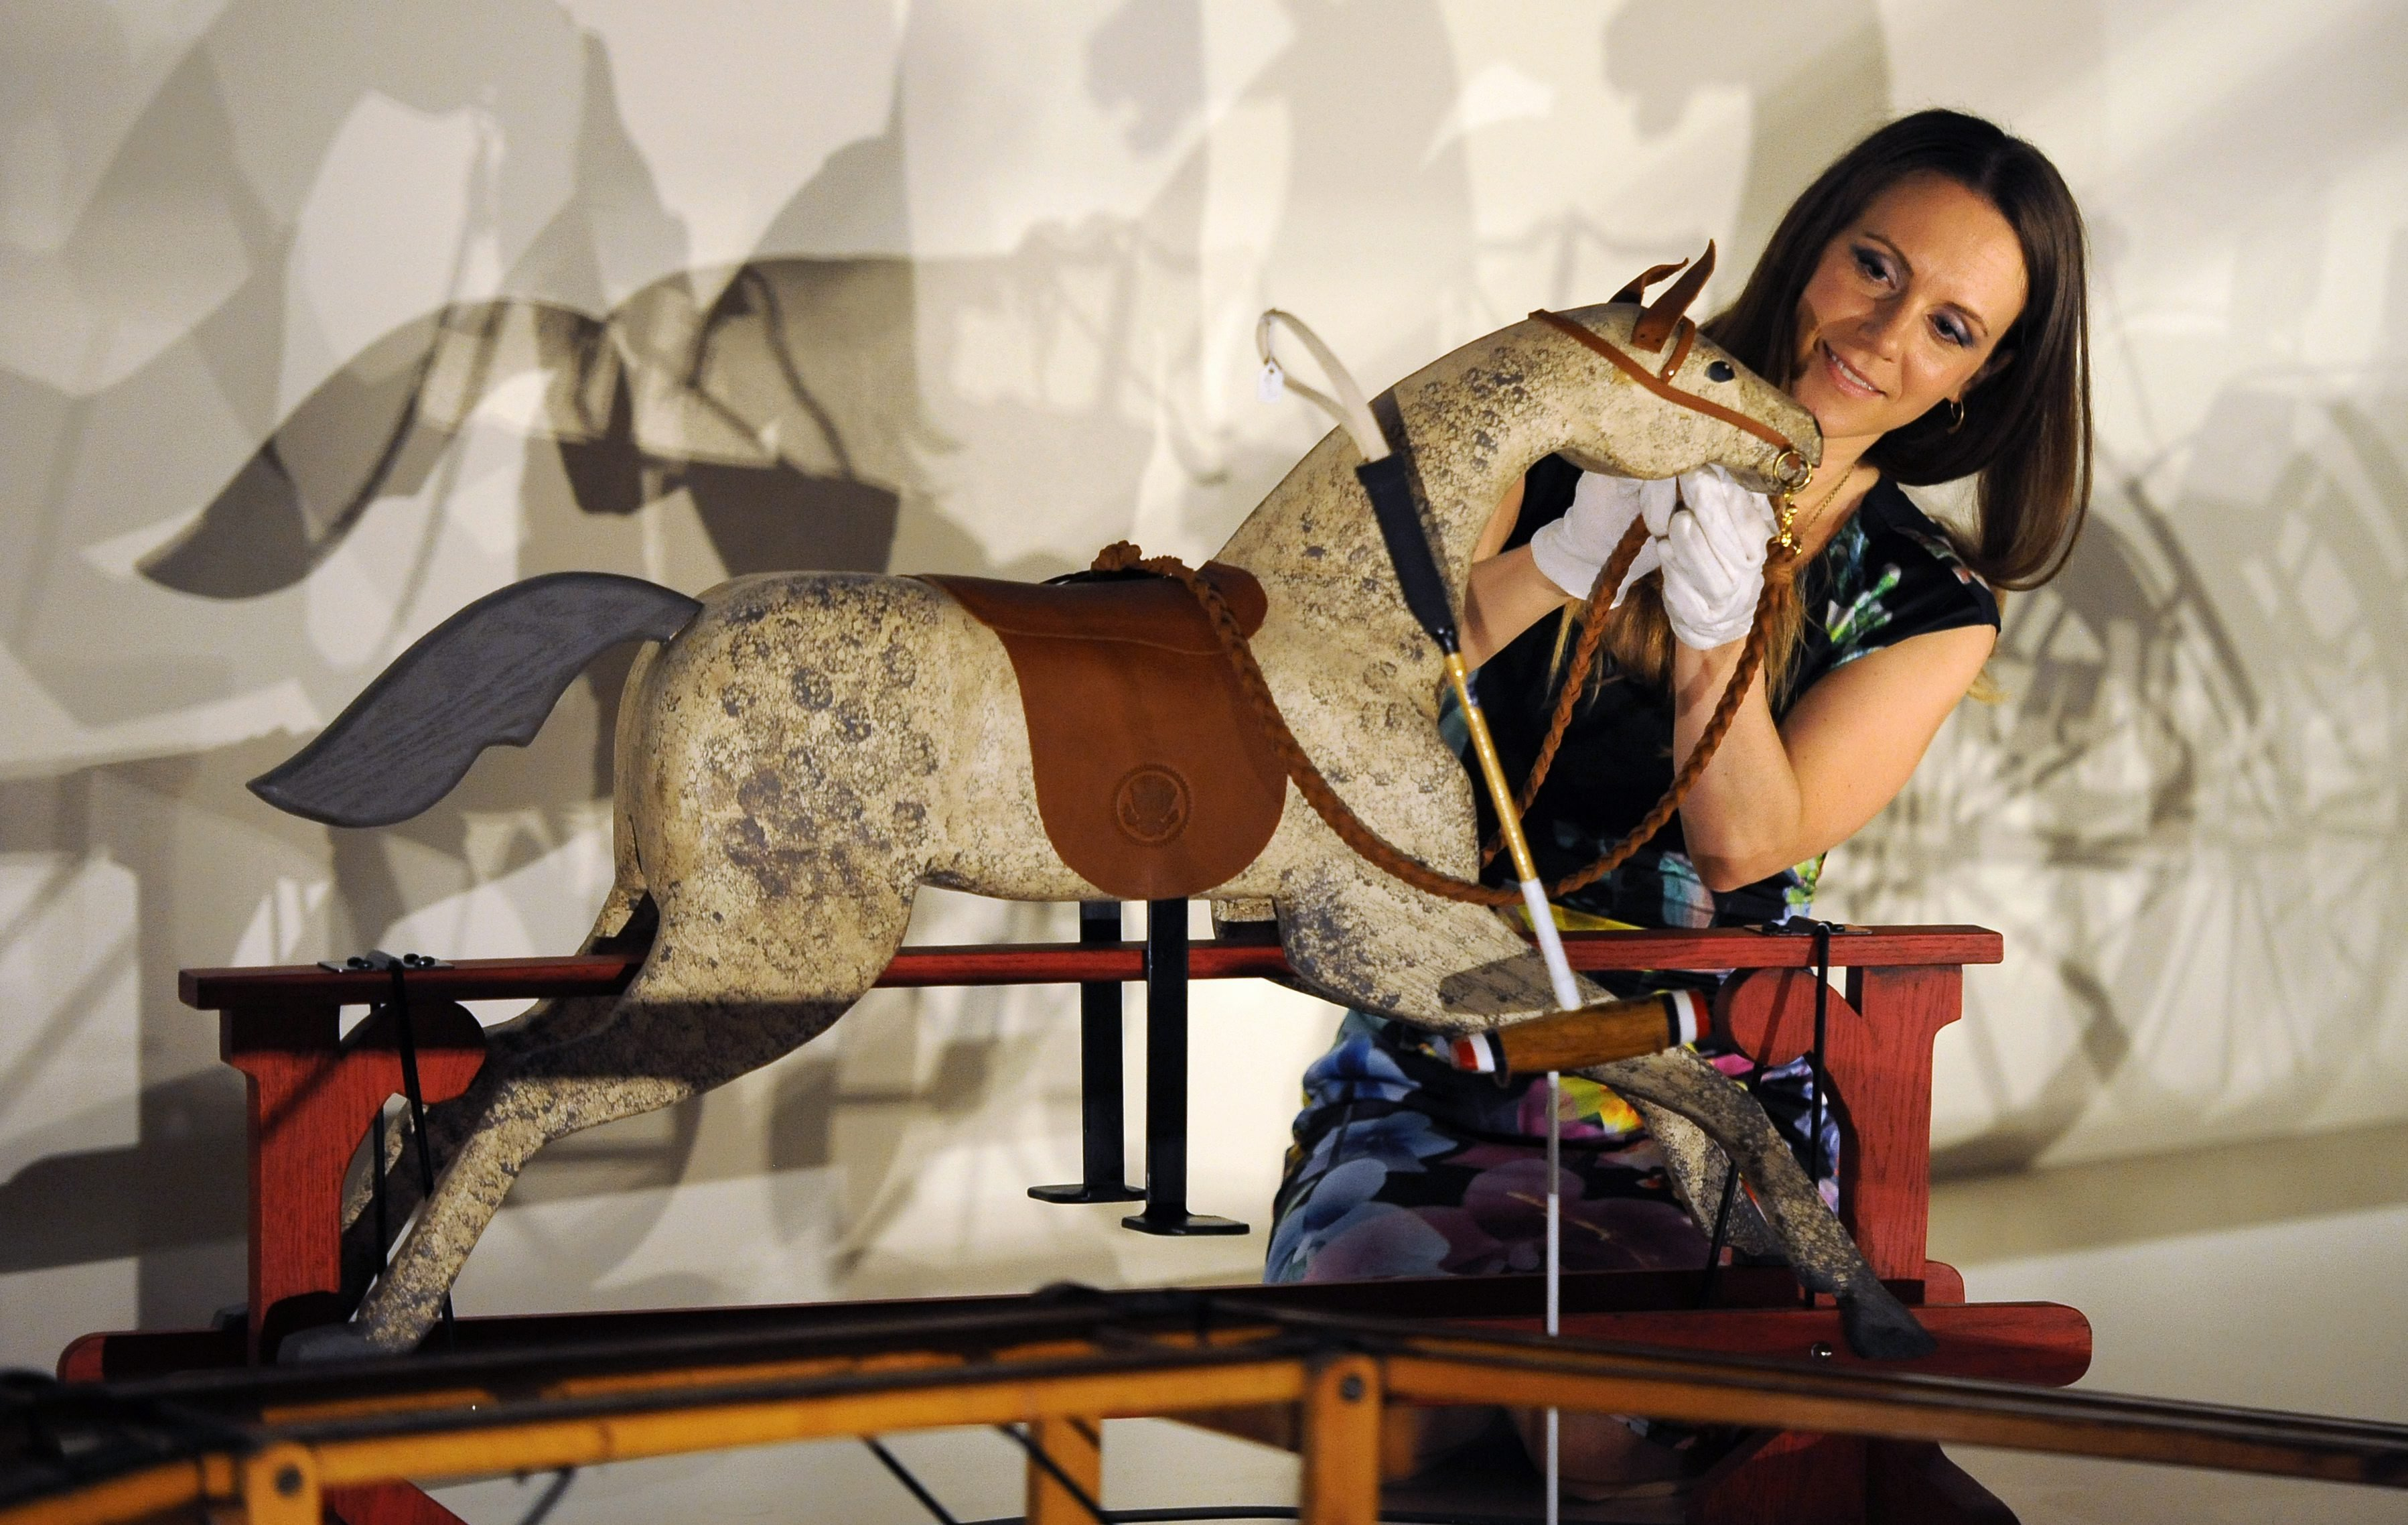 Curator Anna Reynolds adds the finishing touches to a rocking horse presented to Prince George of Cambridge by U..S President Barak Obama and his wife Michelle Obama at the 'Royal Childhood' exhibition at Buckingham Palace in London on July 24, 2014.